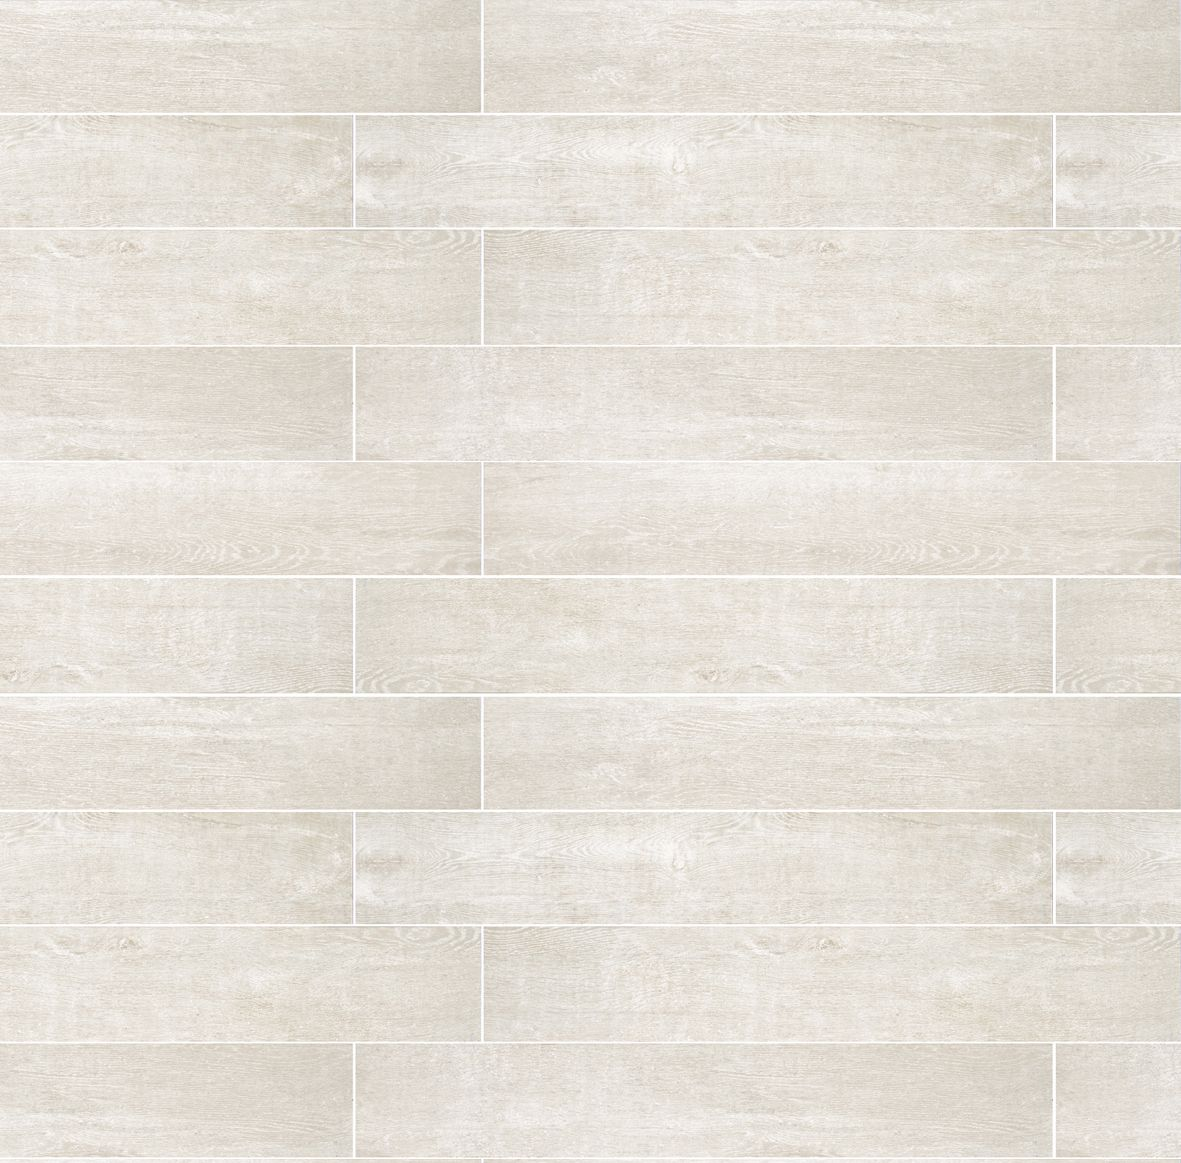 tile and bathroom rovere patina 20x120 nat 13074 jpg 1181 215 1163 14656